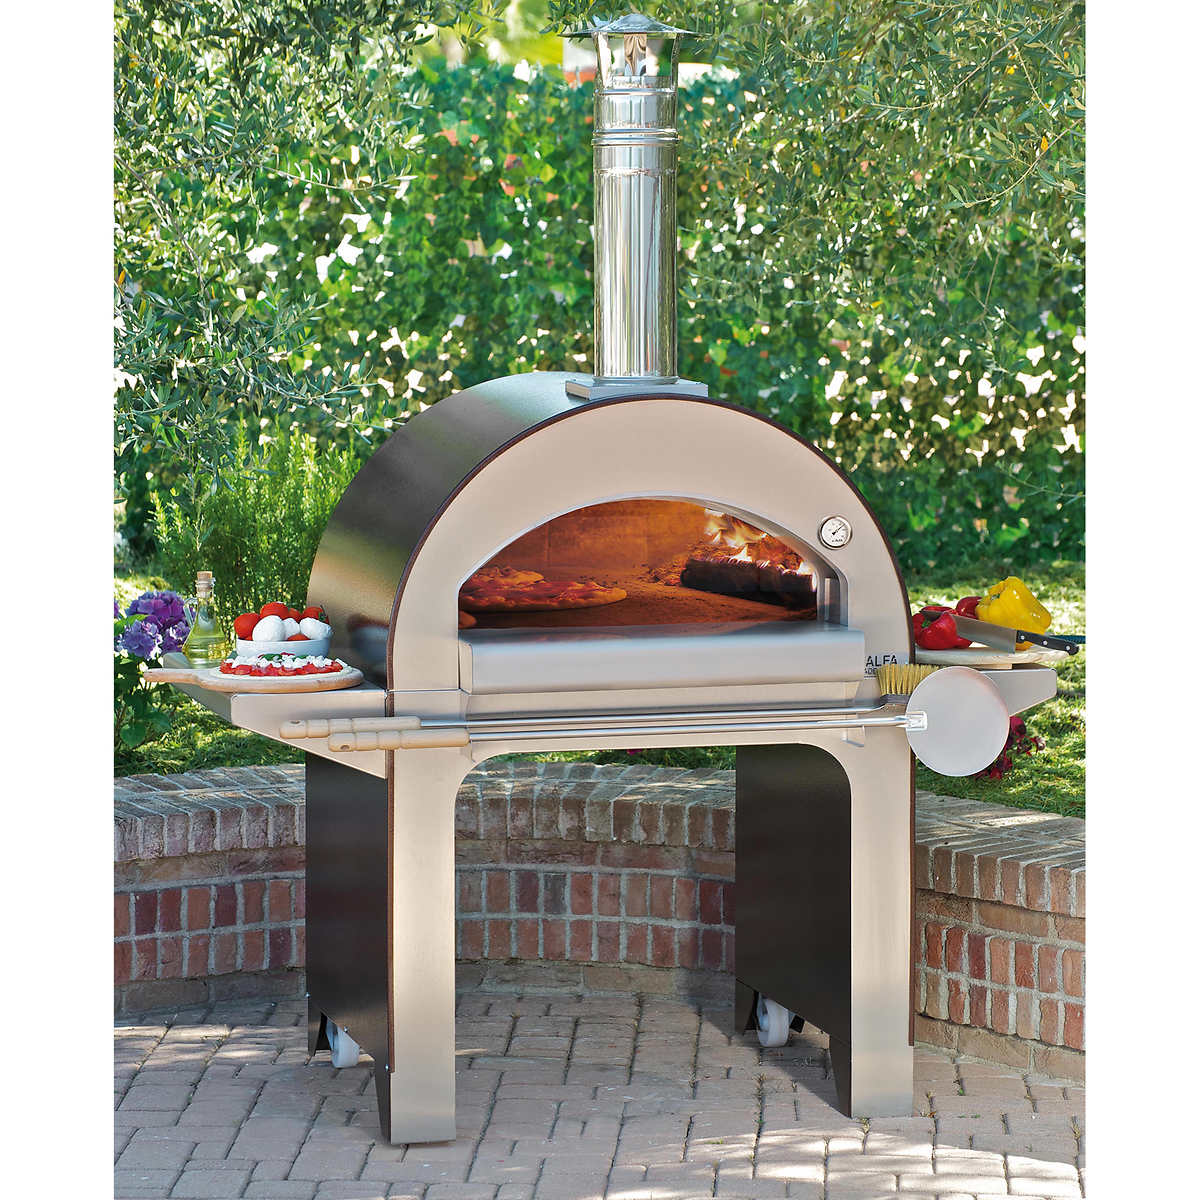 Portable wood fired pizza oven for sale - Alfa Forno 4 Italian Wood Fired Oven Cart